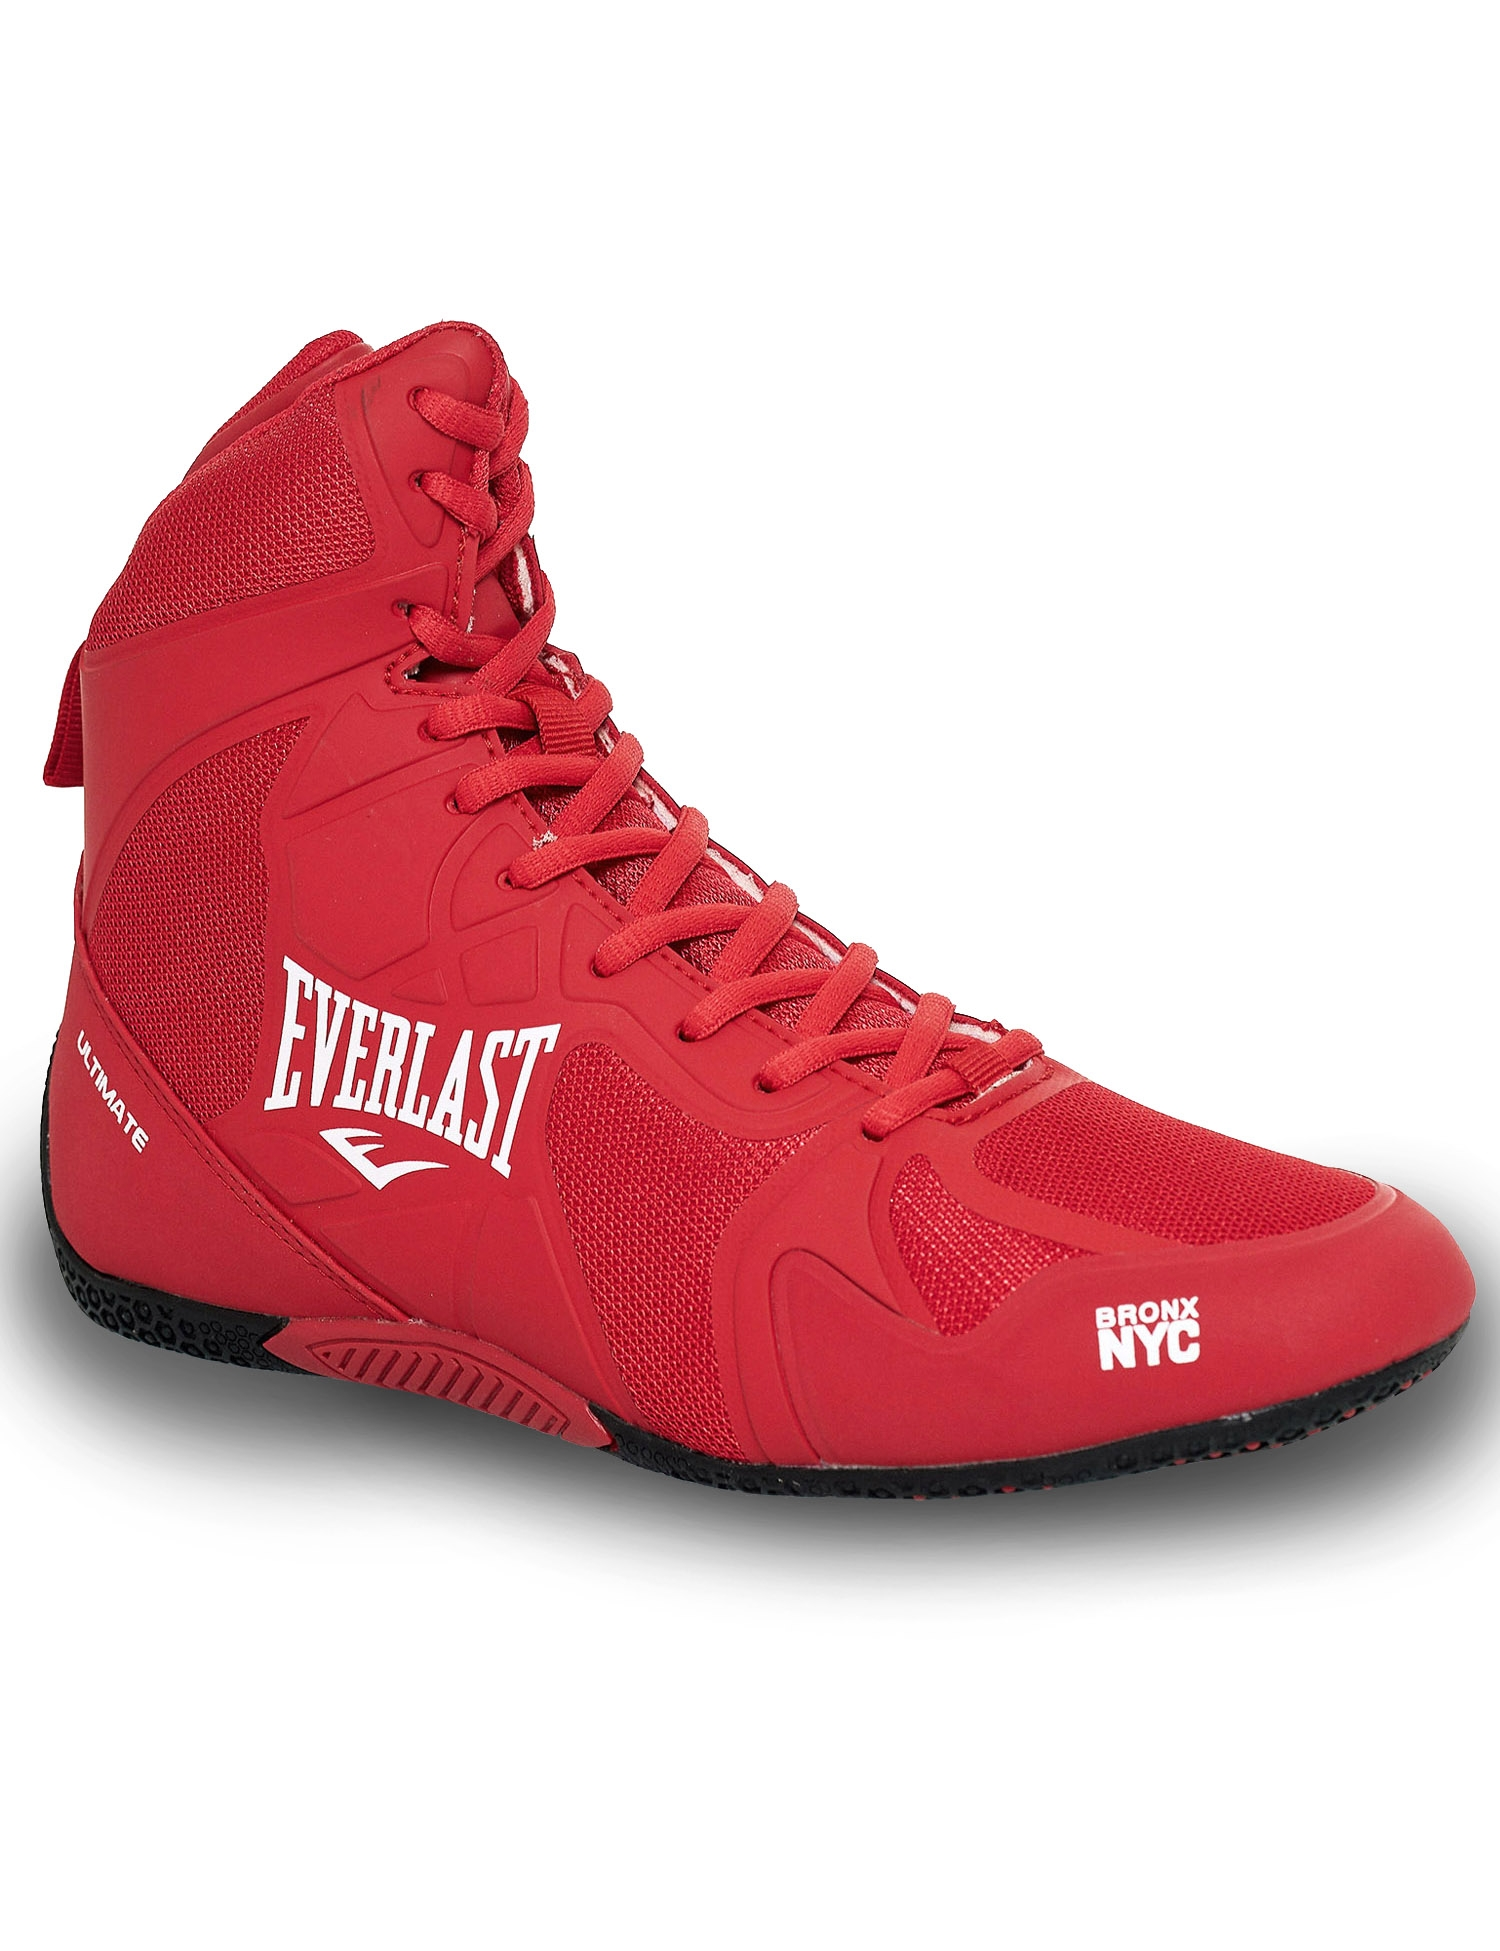 Everlast Boxing Shoe 68376160-04 Red